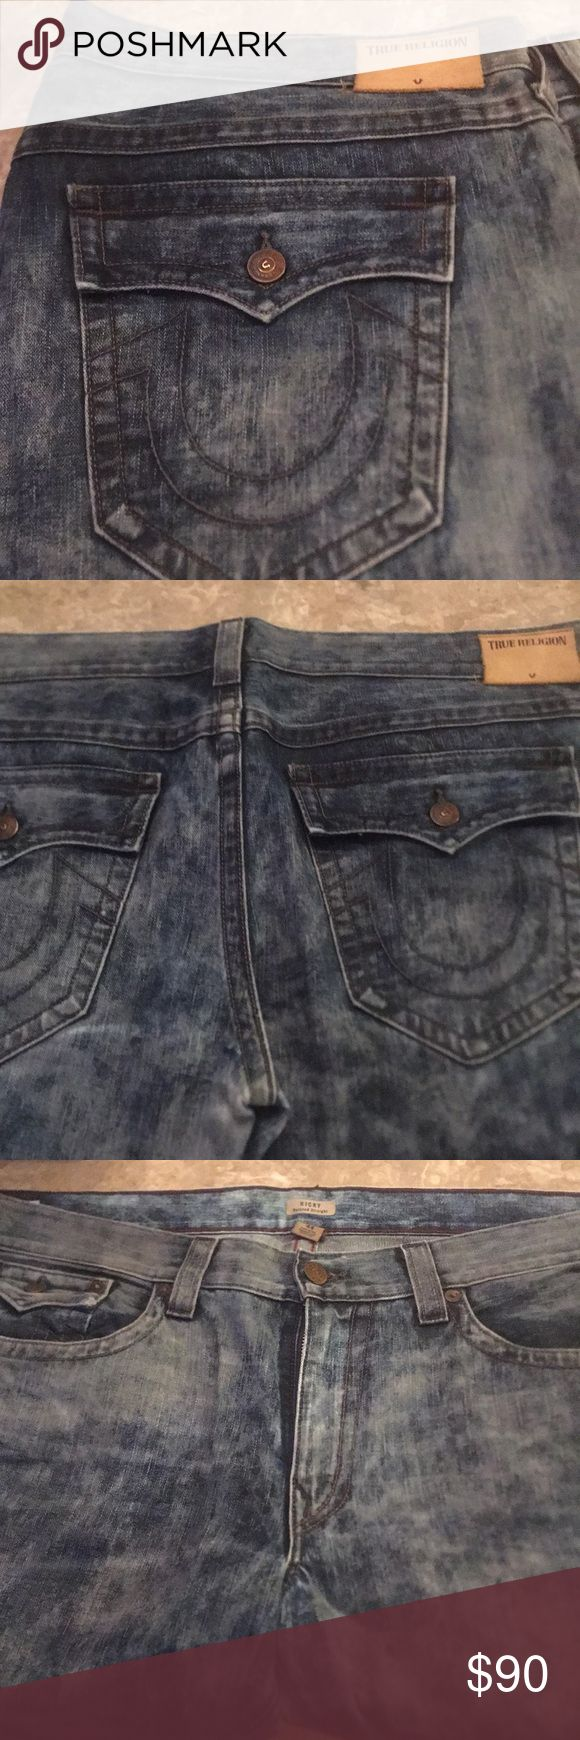 Men's True Religion jeans Men's True religion straight leg jeans size 44 waist 24' rise 11' inseam 33' True Religion Jeans